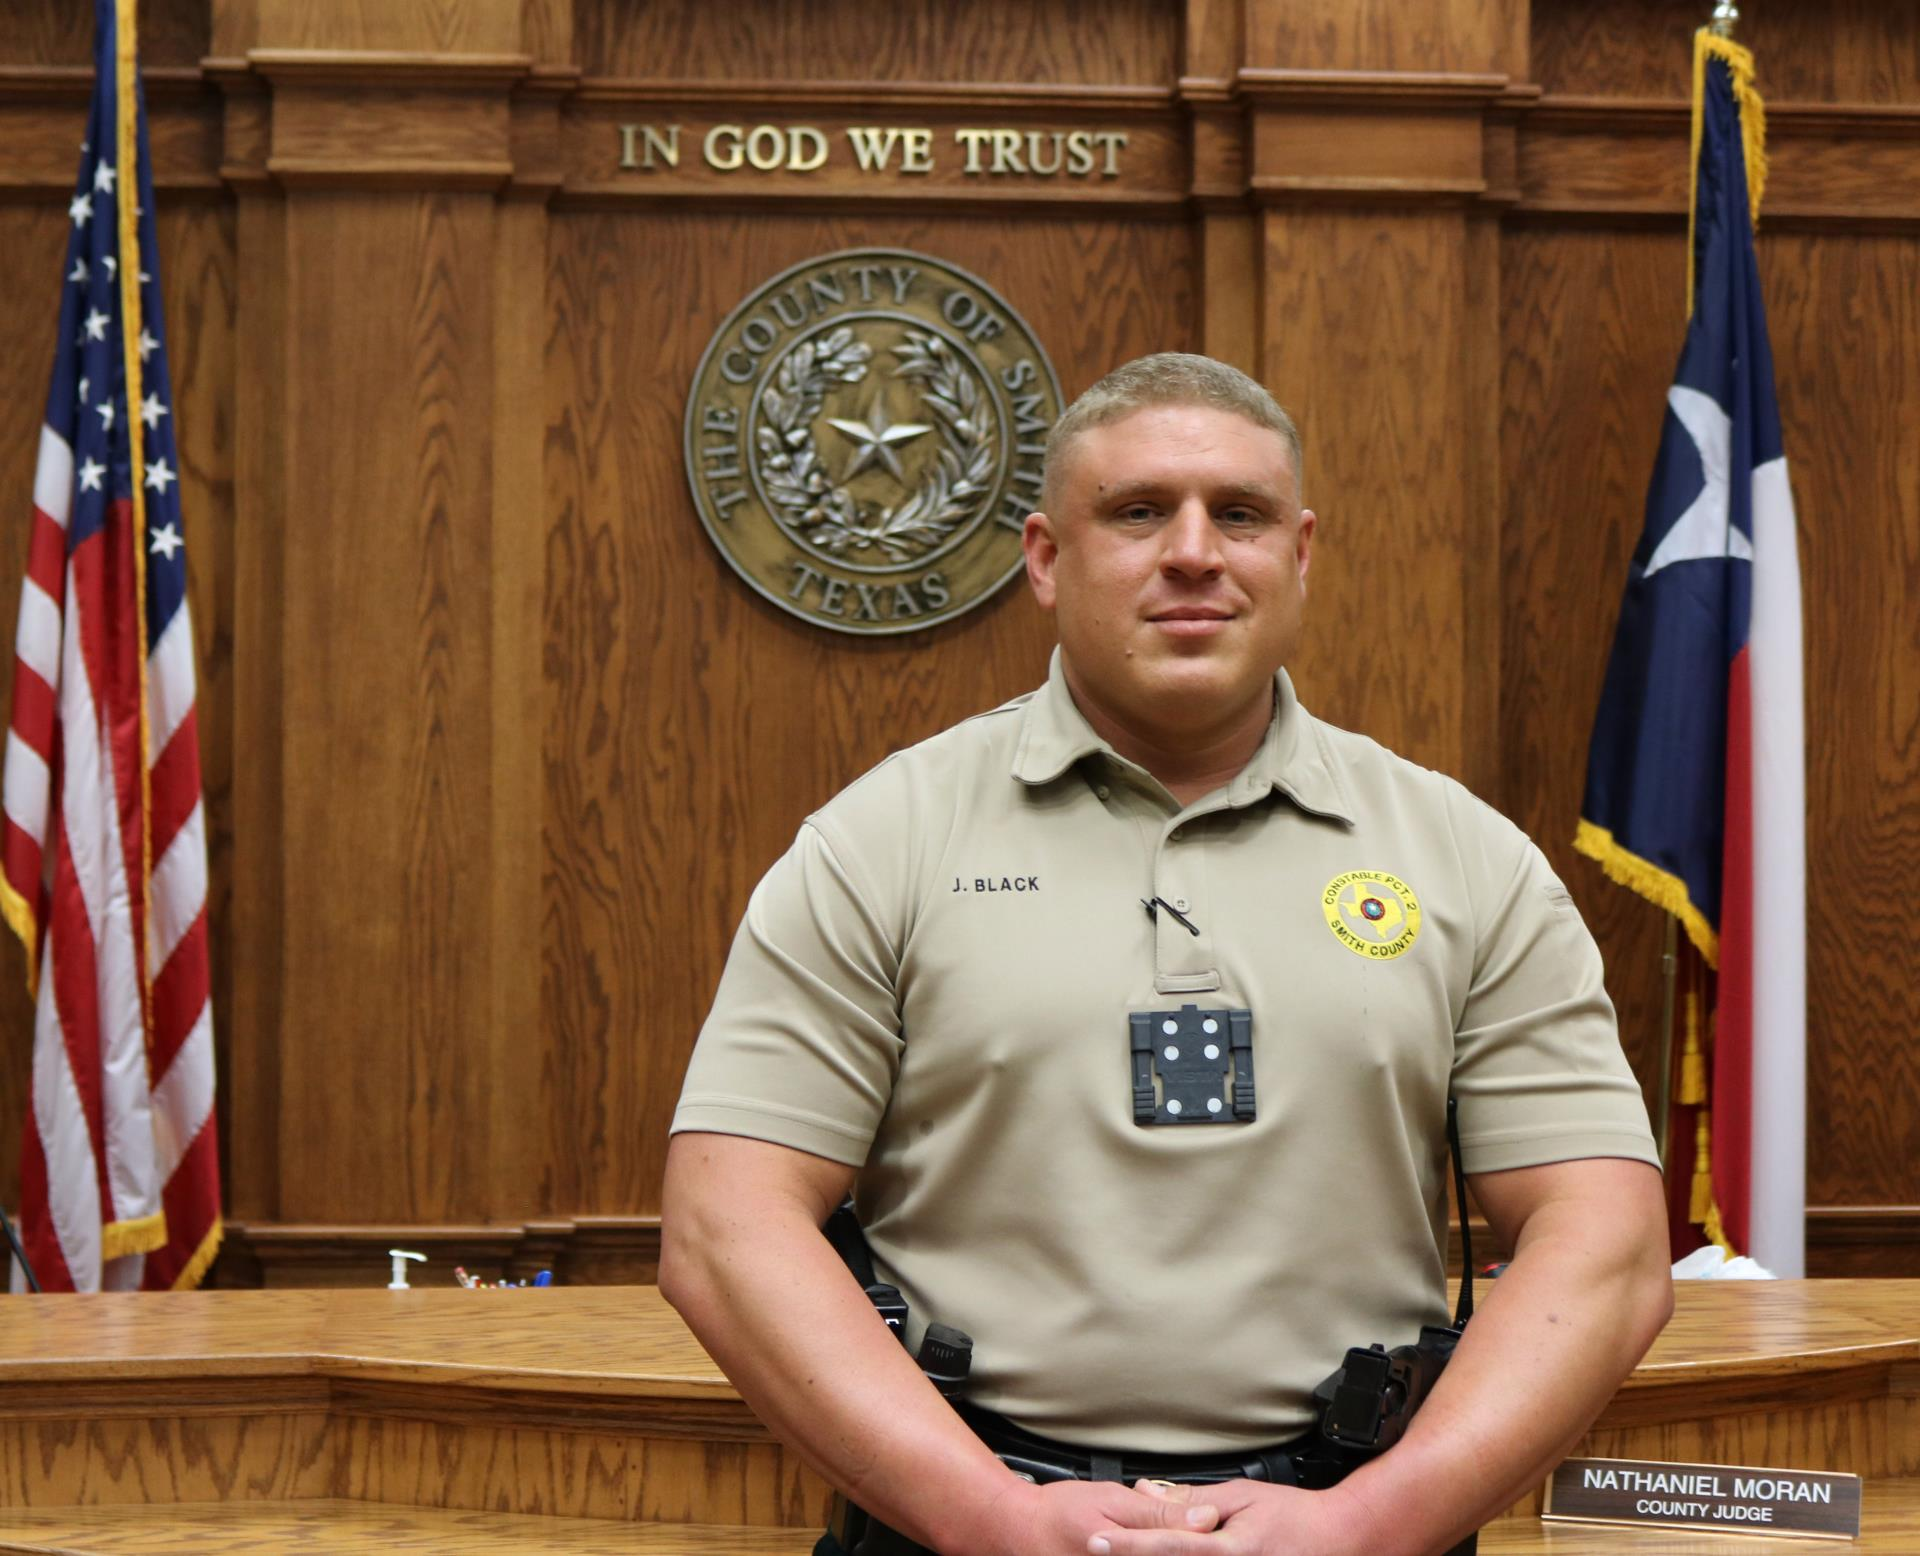 Precinct 2 Deputy Constable Josh Black for Website